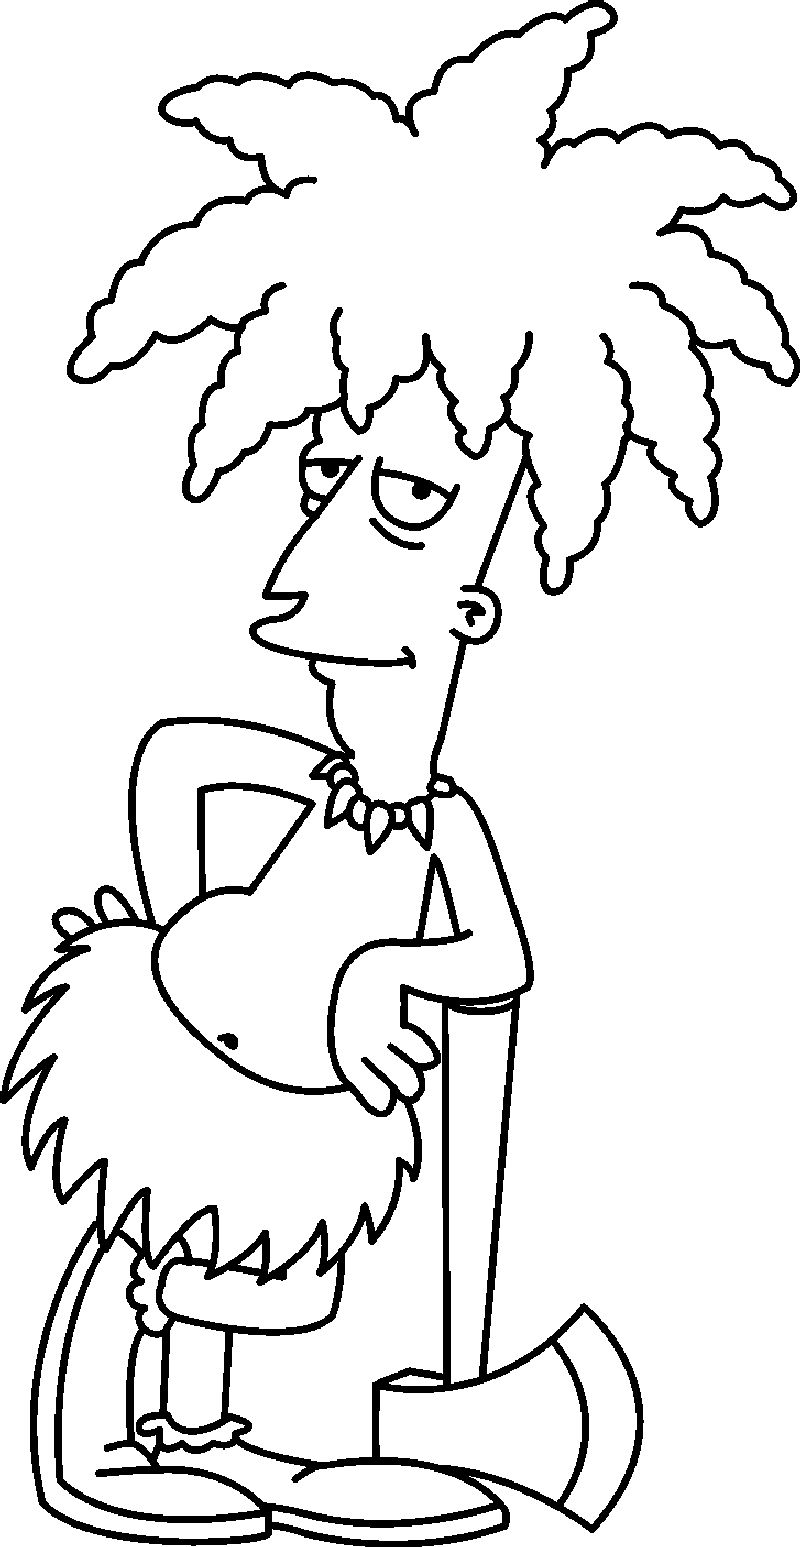 Printable The Simpson coloring pages prin free ok